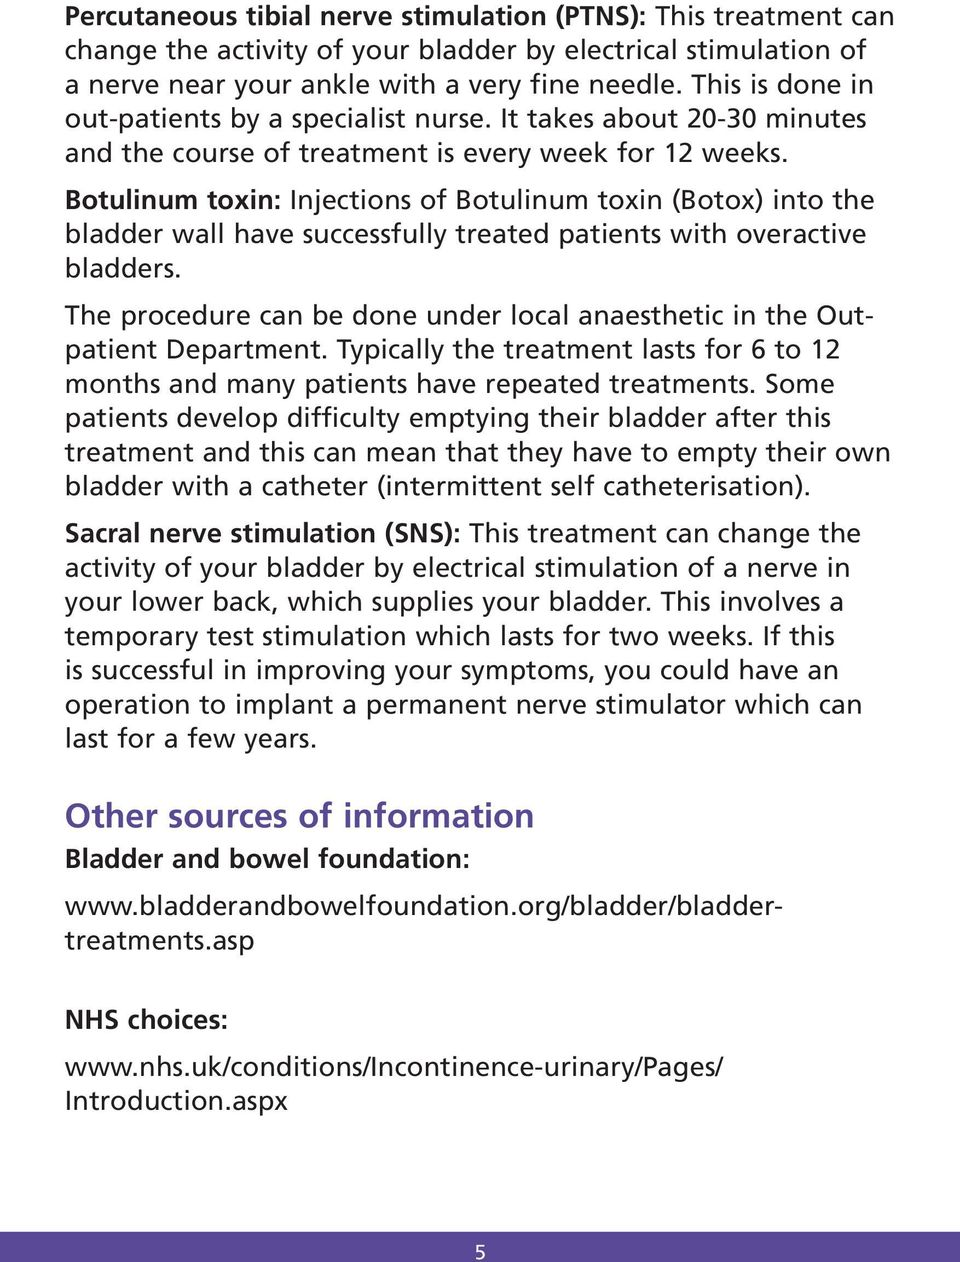 Botulinum toxin: Injections of Botulinum toxin (Botox) into the bladder wall have successfully treated patients with overactive bladders.